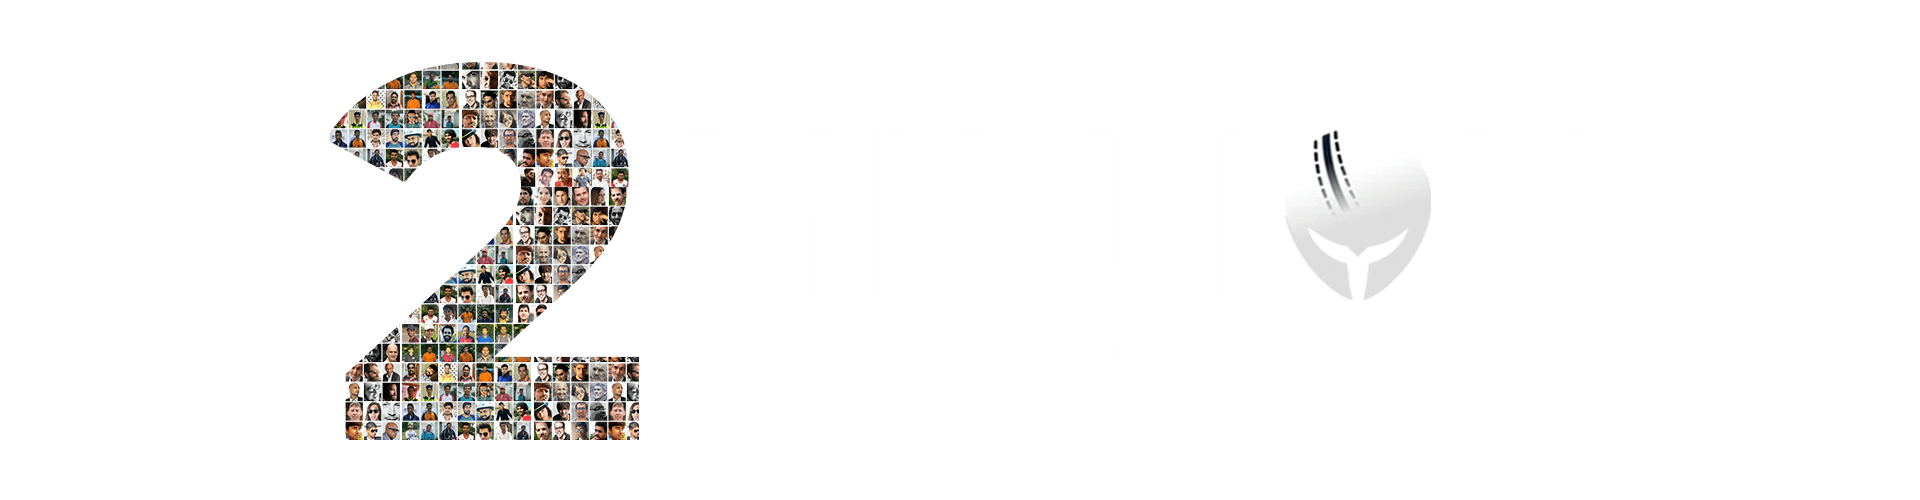 2 million cricketers